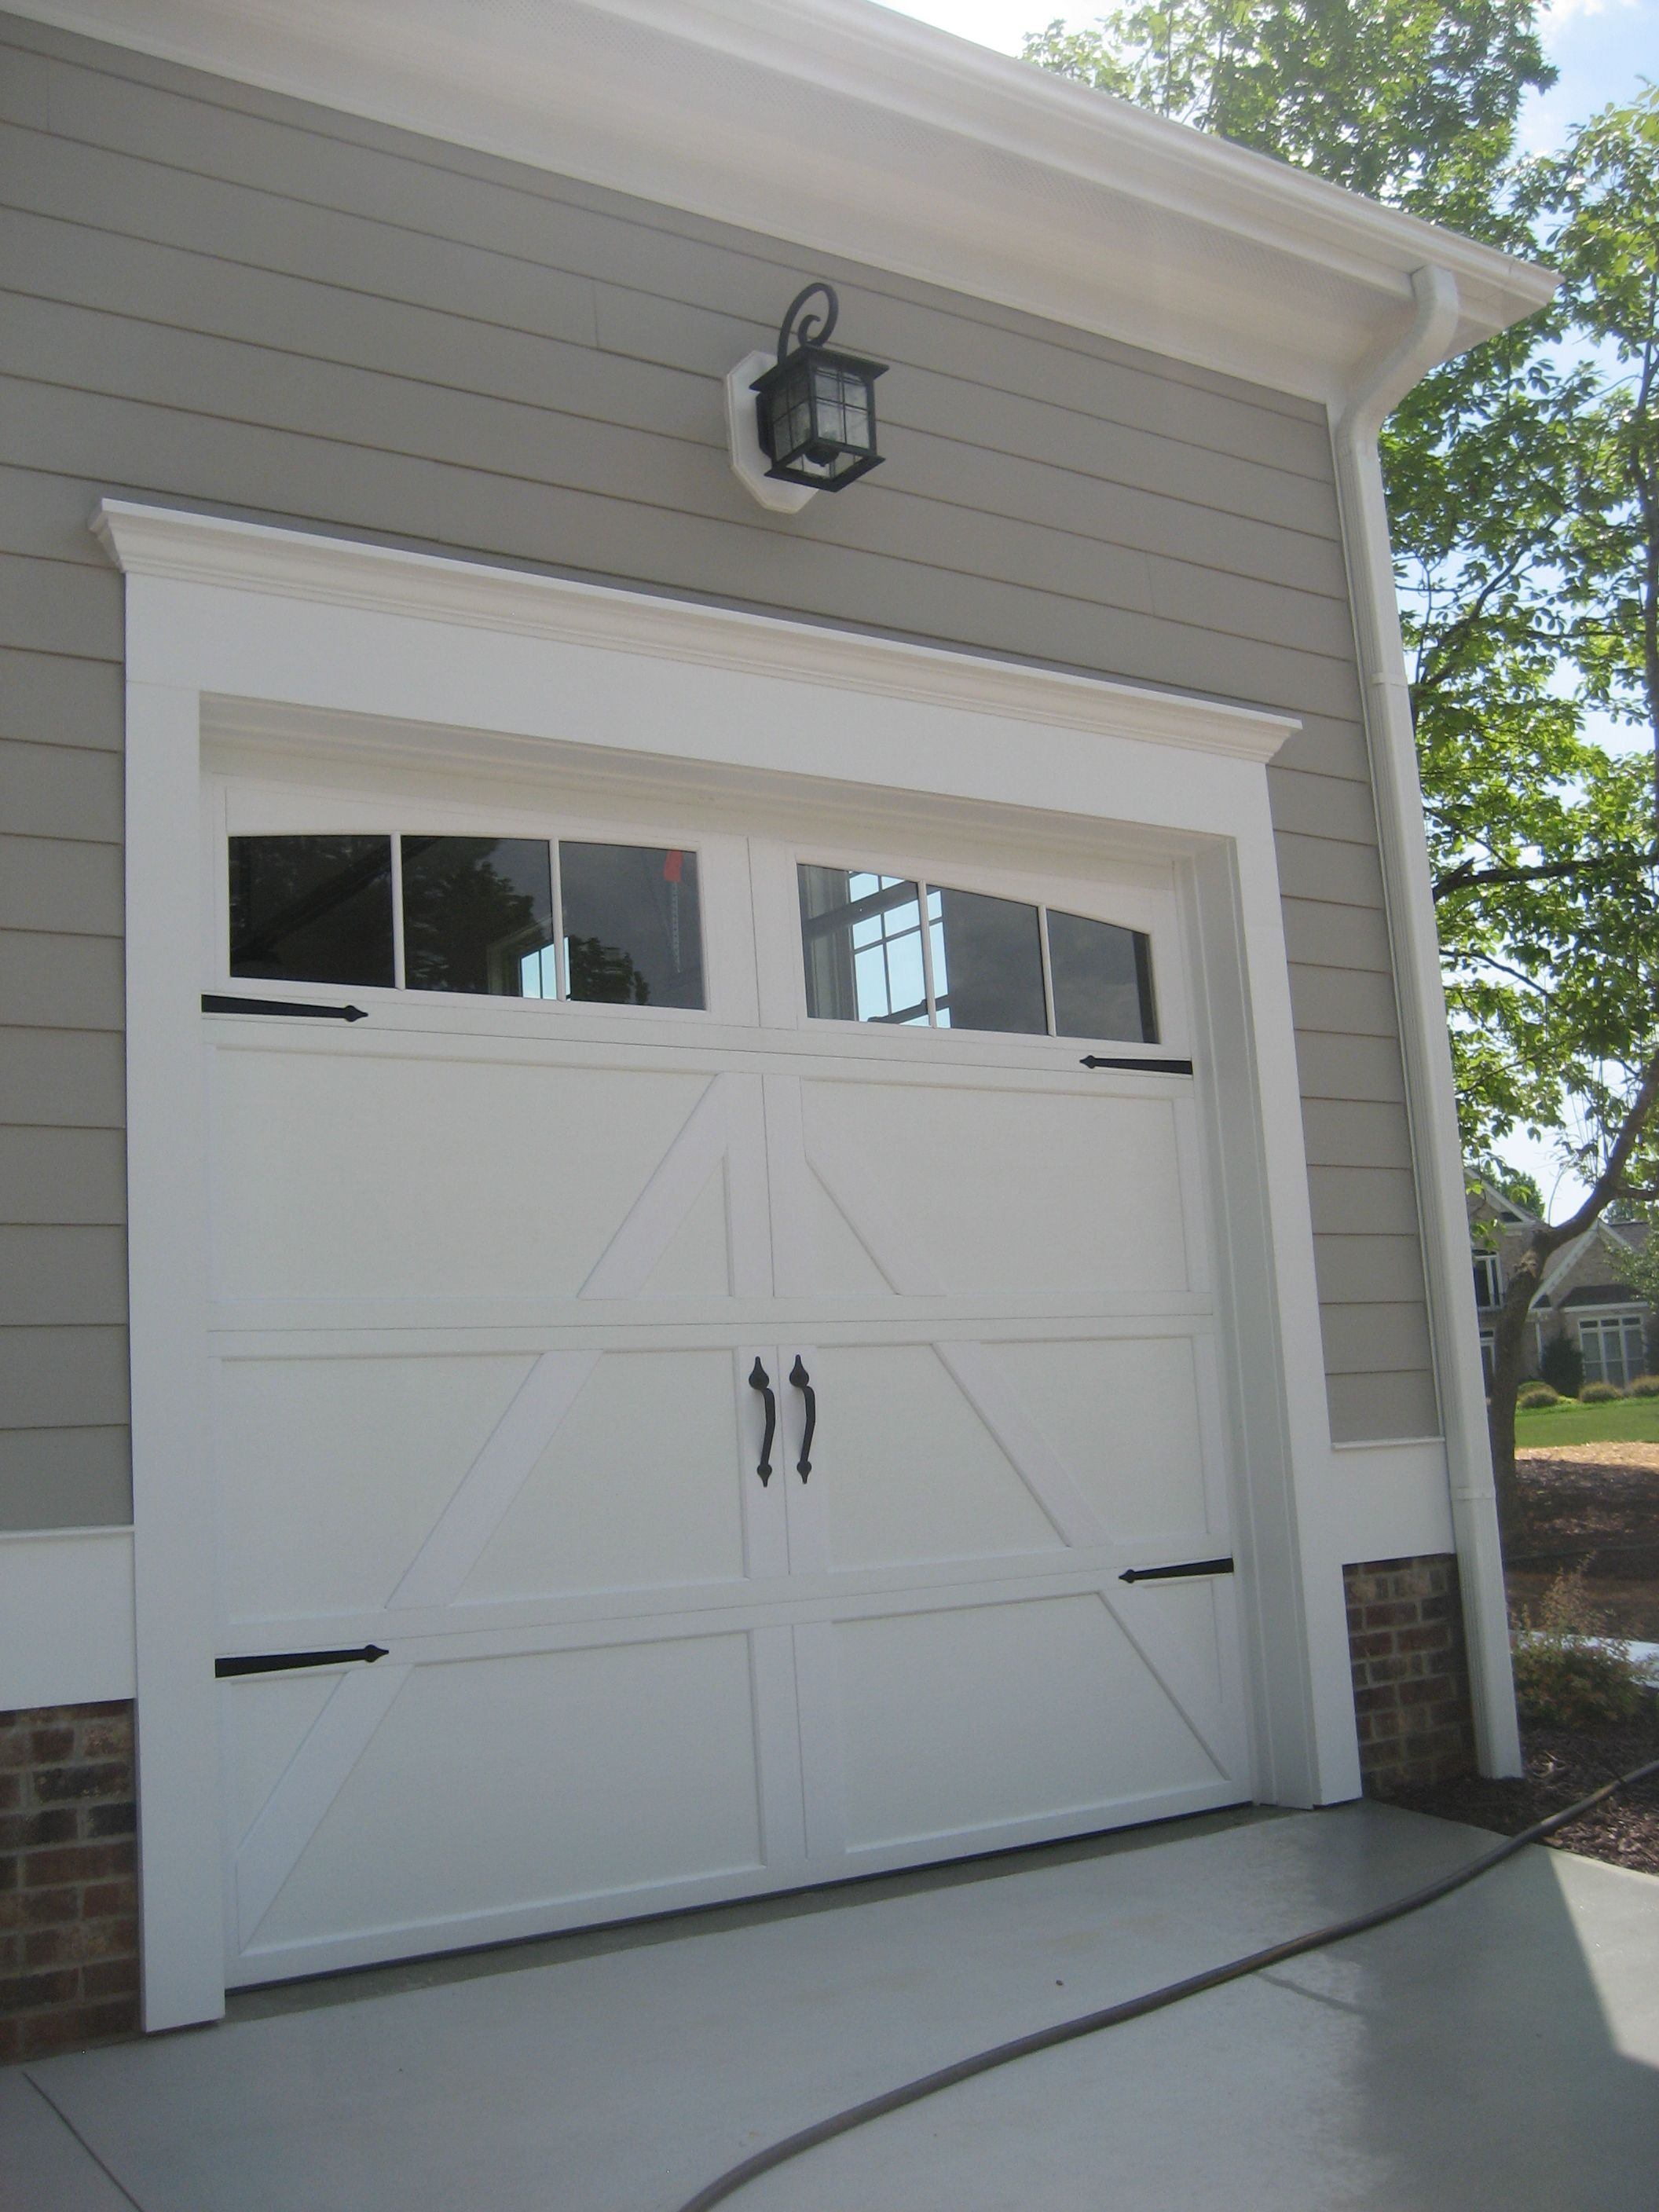 trim pictures photos exterior june door depot elegant front black new kit of home garage